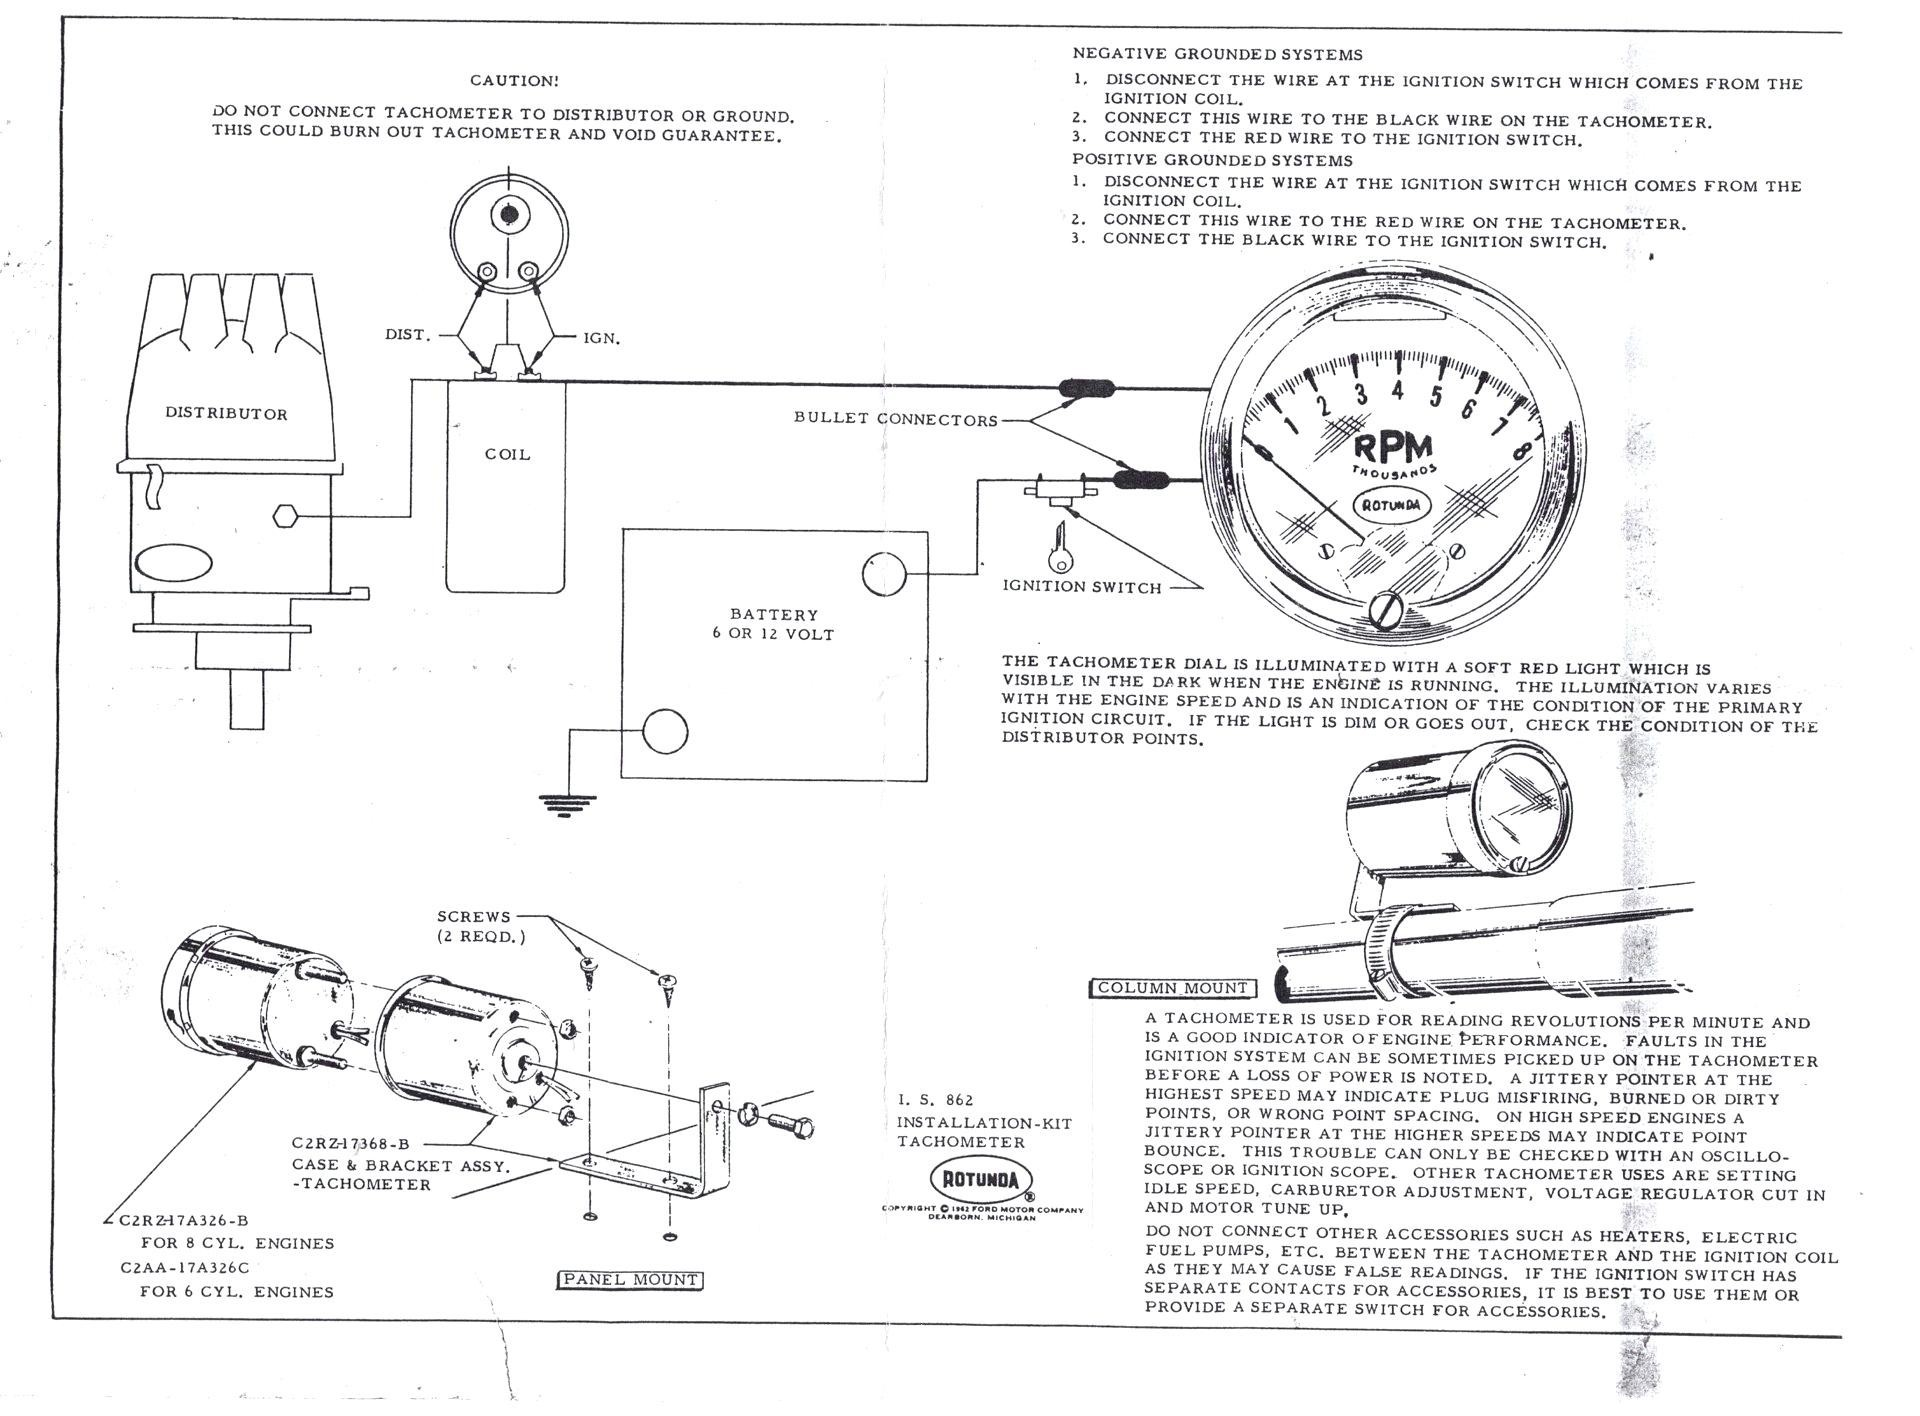 1999 Rav4 Fuel Gauge Wiring Diagrams Not Lossing Diagram Auto Meter Isuzu Rodeo Amazing Vdo Gas